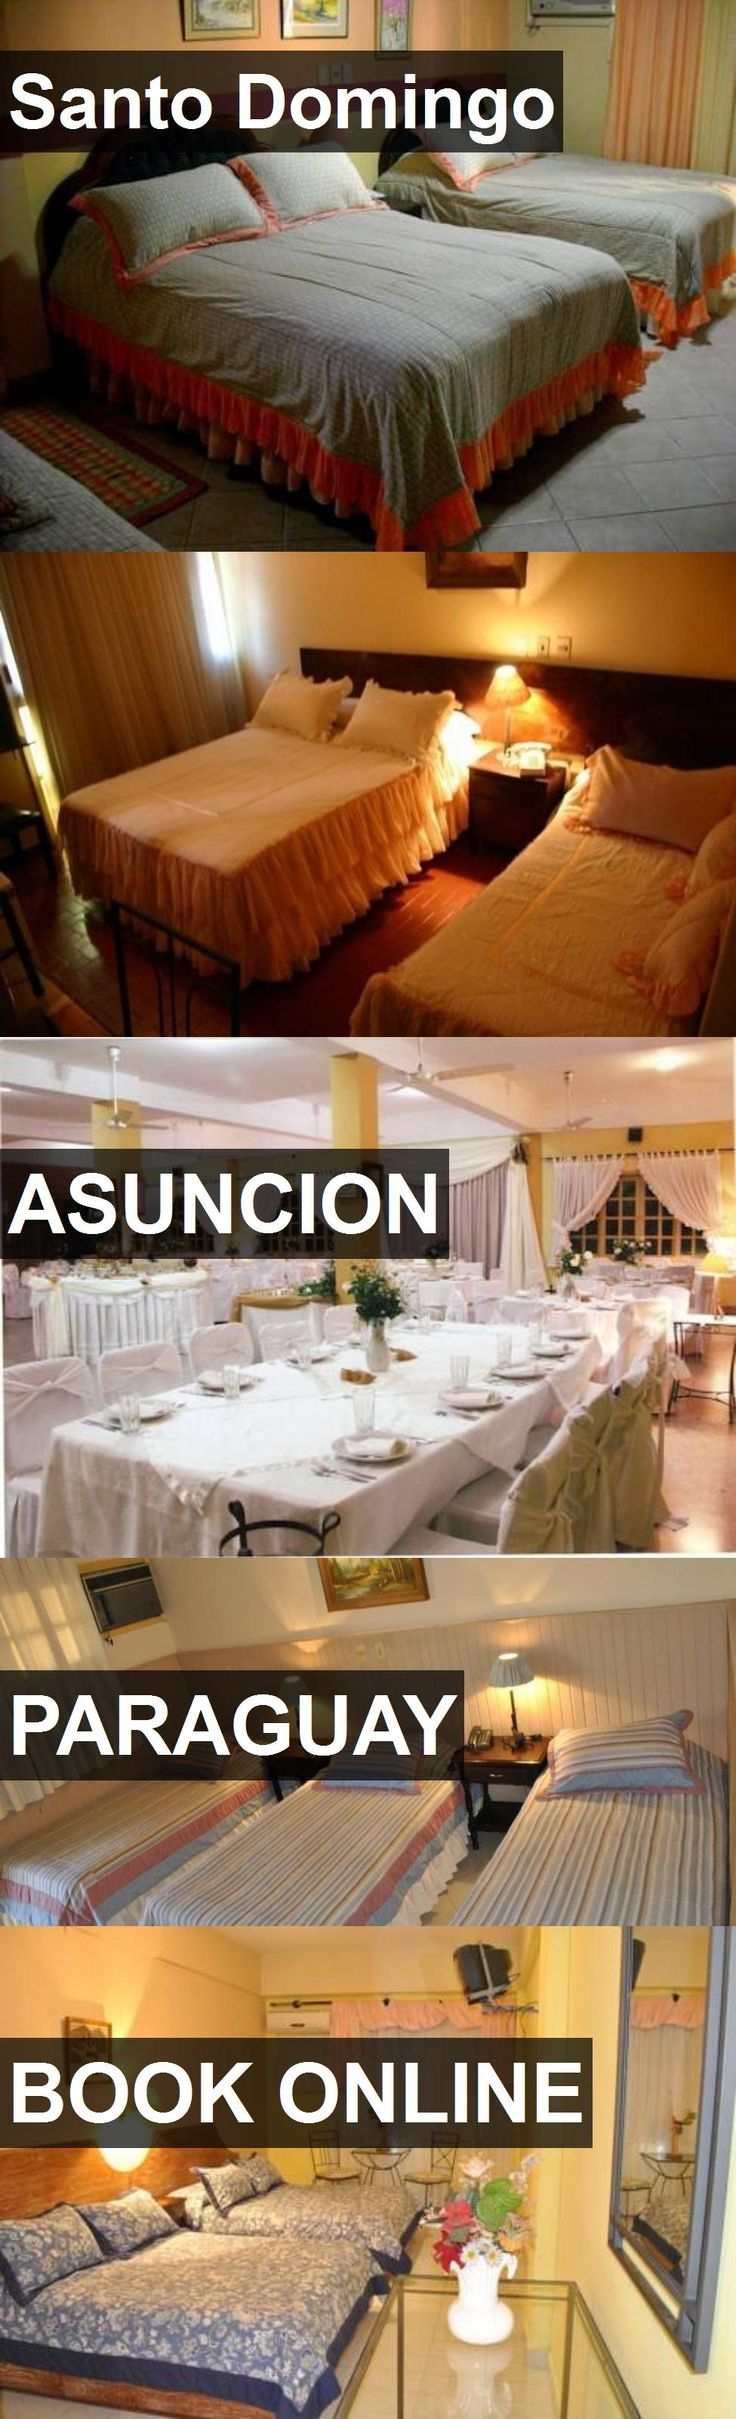 Hotel Santo Domingo in Asuncion, Paraguay. For more information, photos, reviews and best prices please follow the link. #Paraguay #Asuncion #travel #vacation #hotel